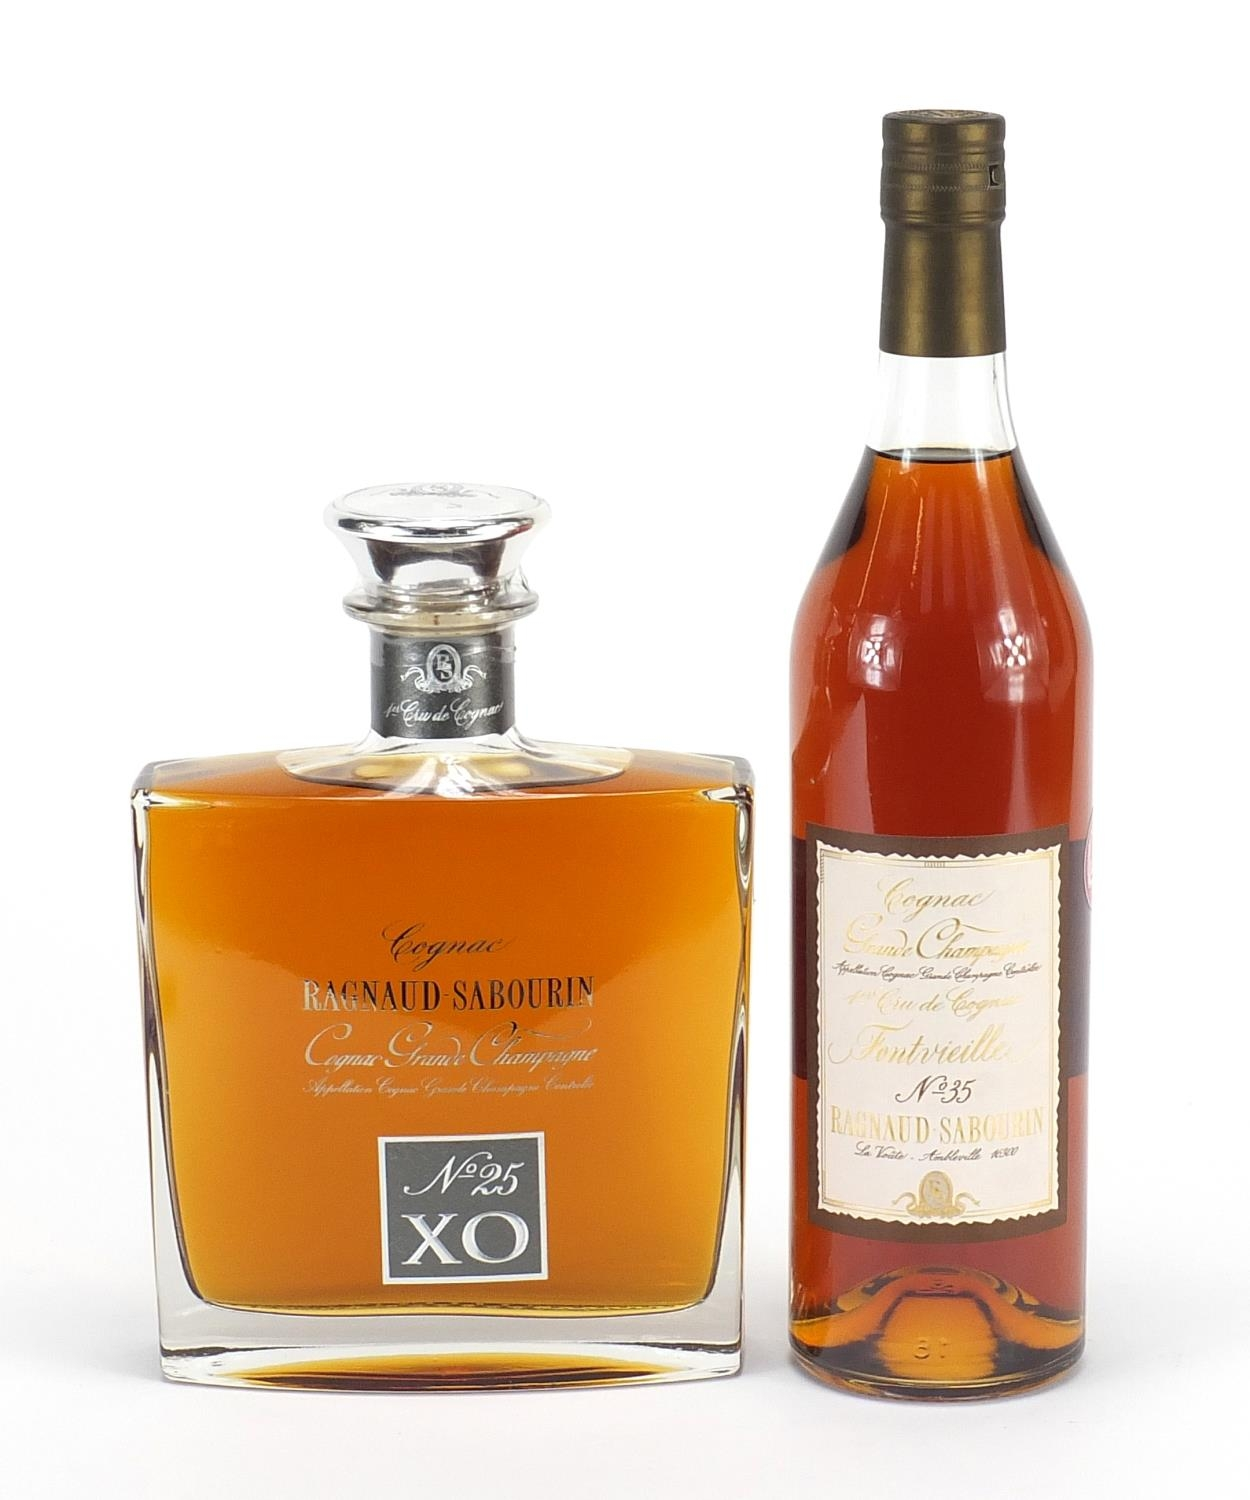 Two bottles of Ragnaud-Sabourin Cognac Grande Champagne comprising XO no 25 and no 35 : For